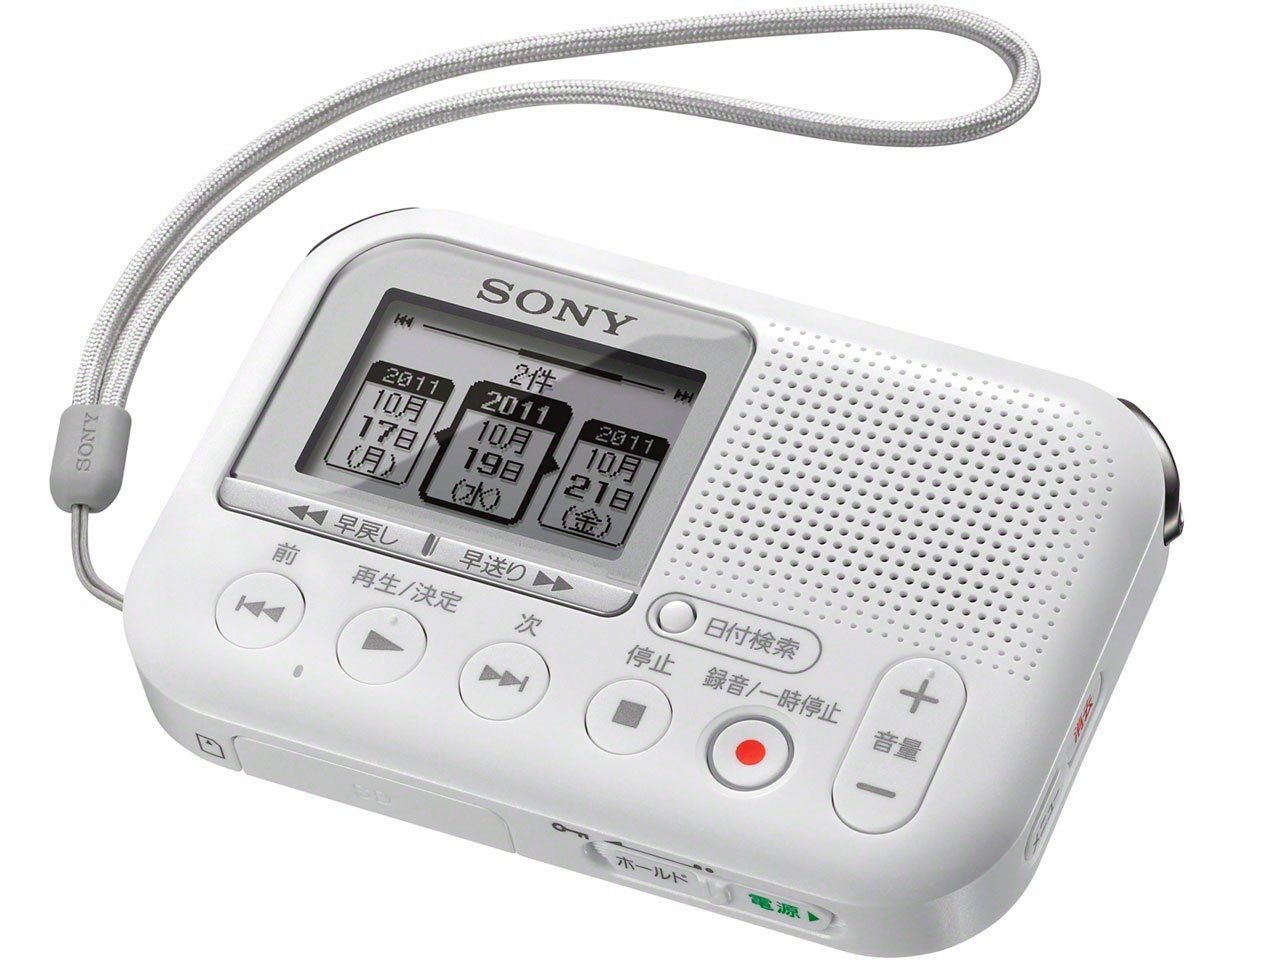 SONY MP3 Digital Voice Recorder White ICD-LX30 2GB memory card Stereo recording